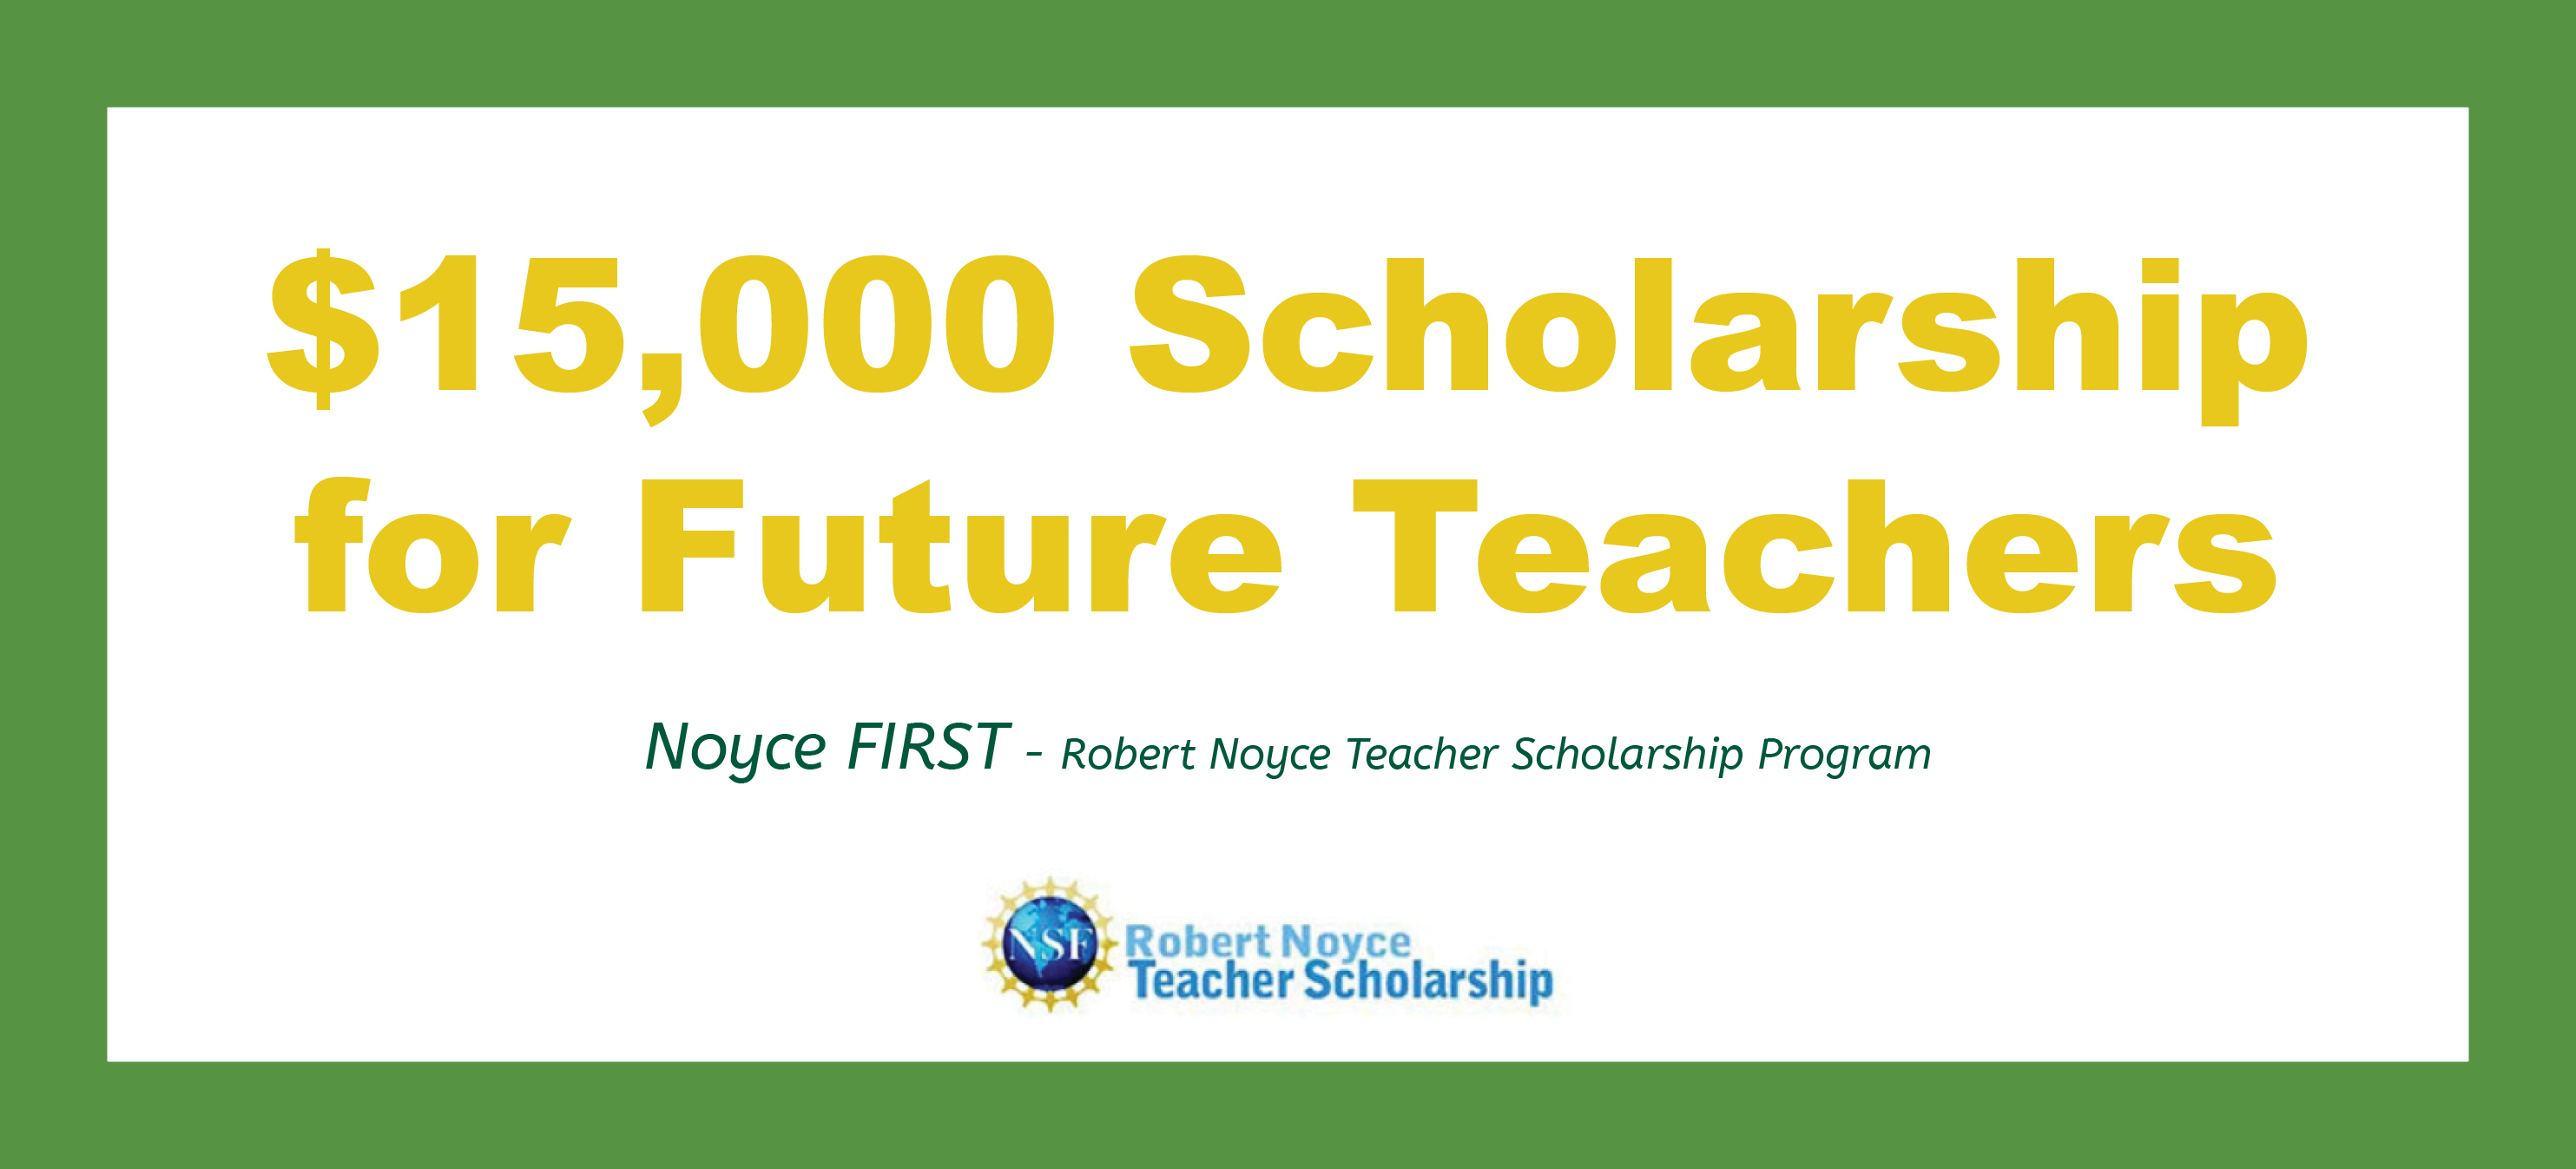 $15,000 Scholarship for Future Teachers